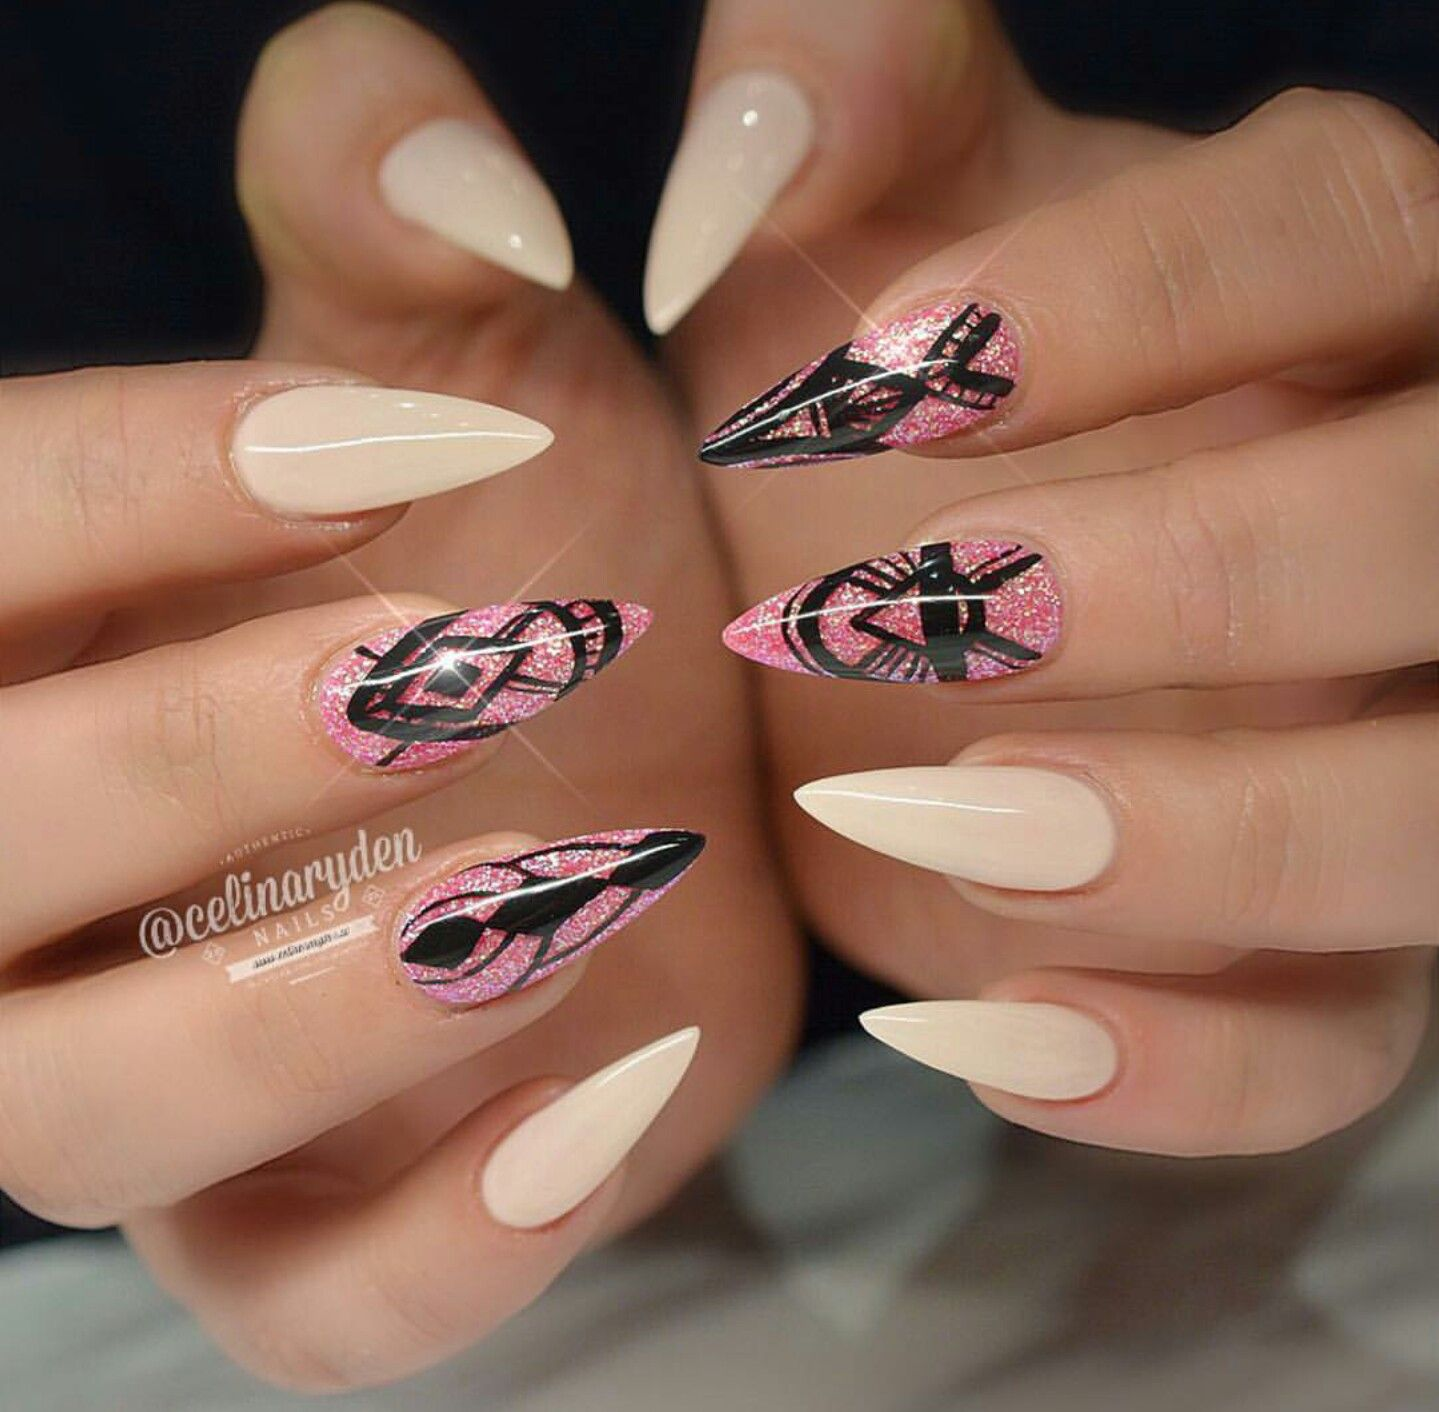 Celina Ryden nails! | I love nails!!!! ❤ ❤ | Pinterest ...